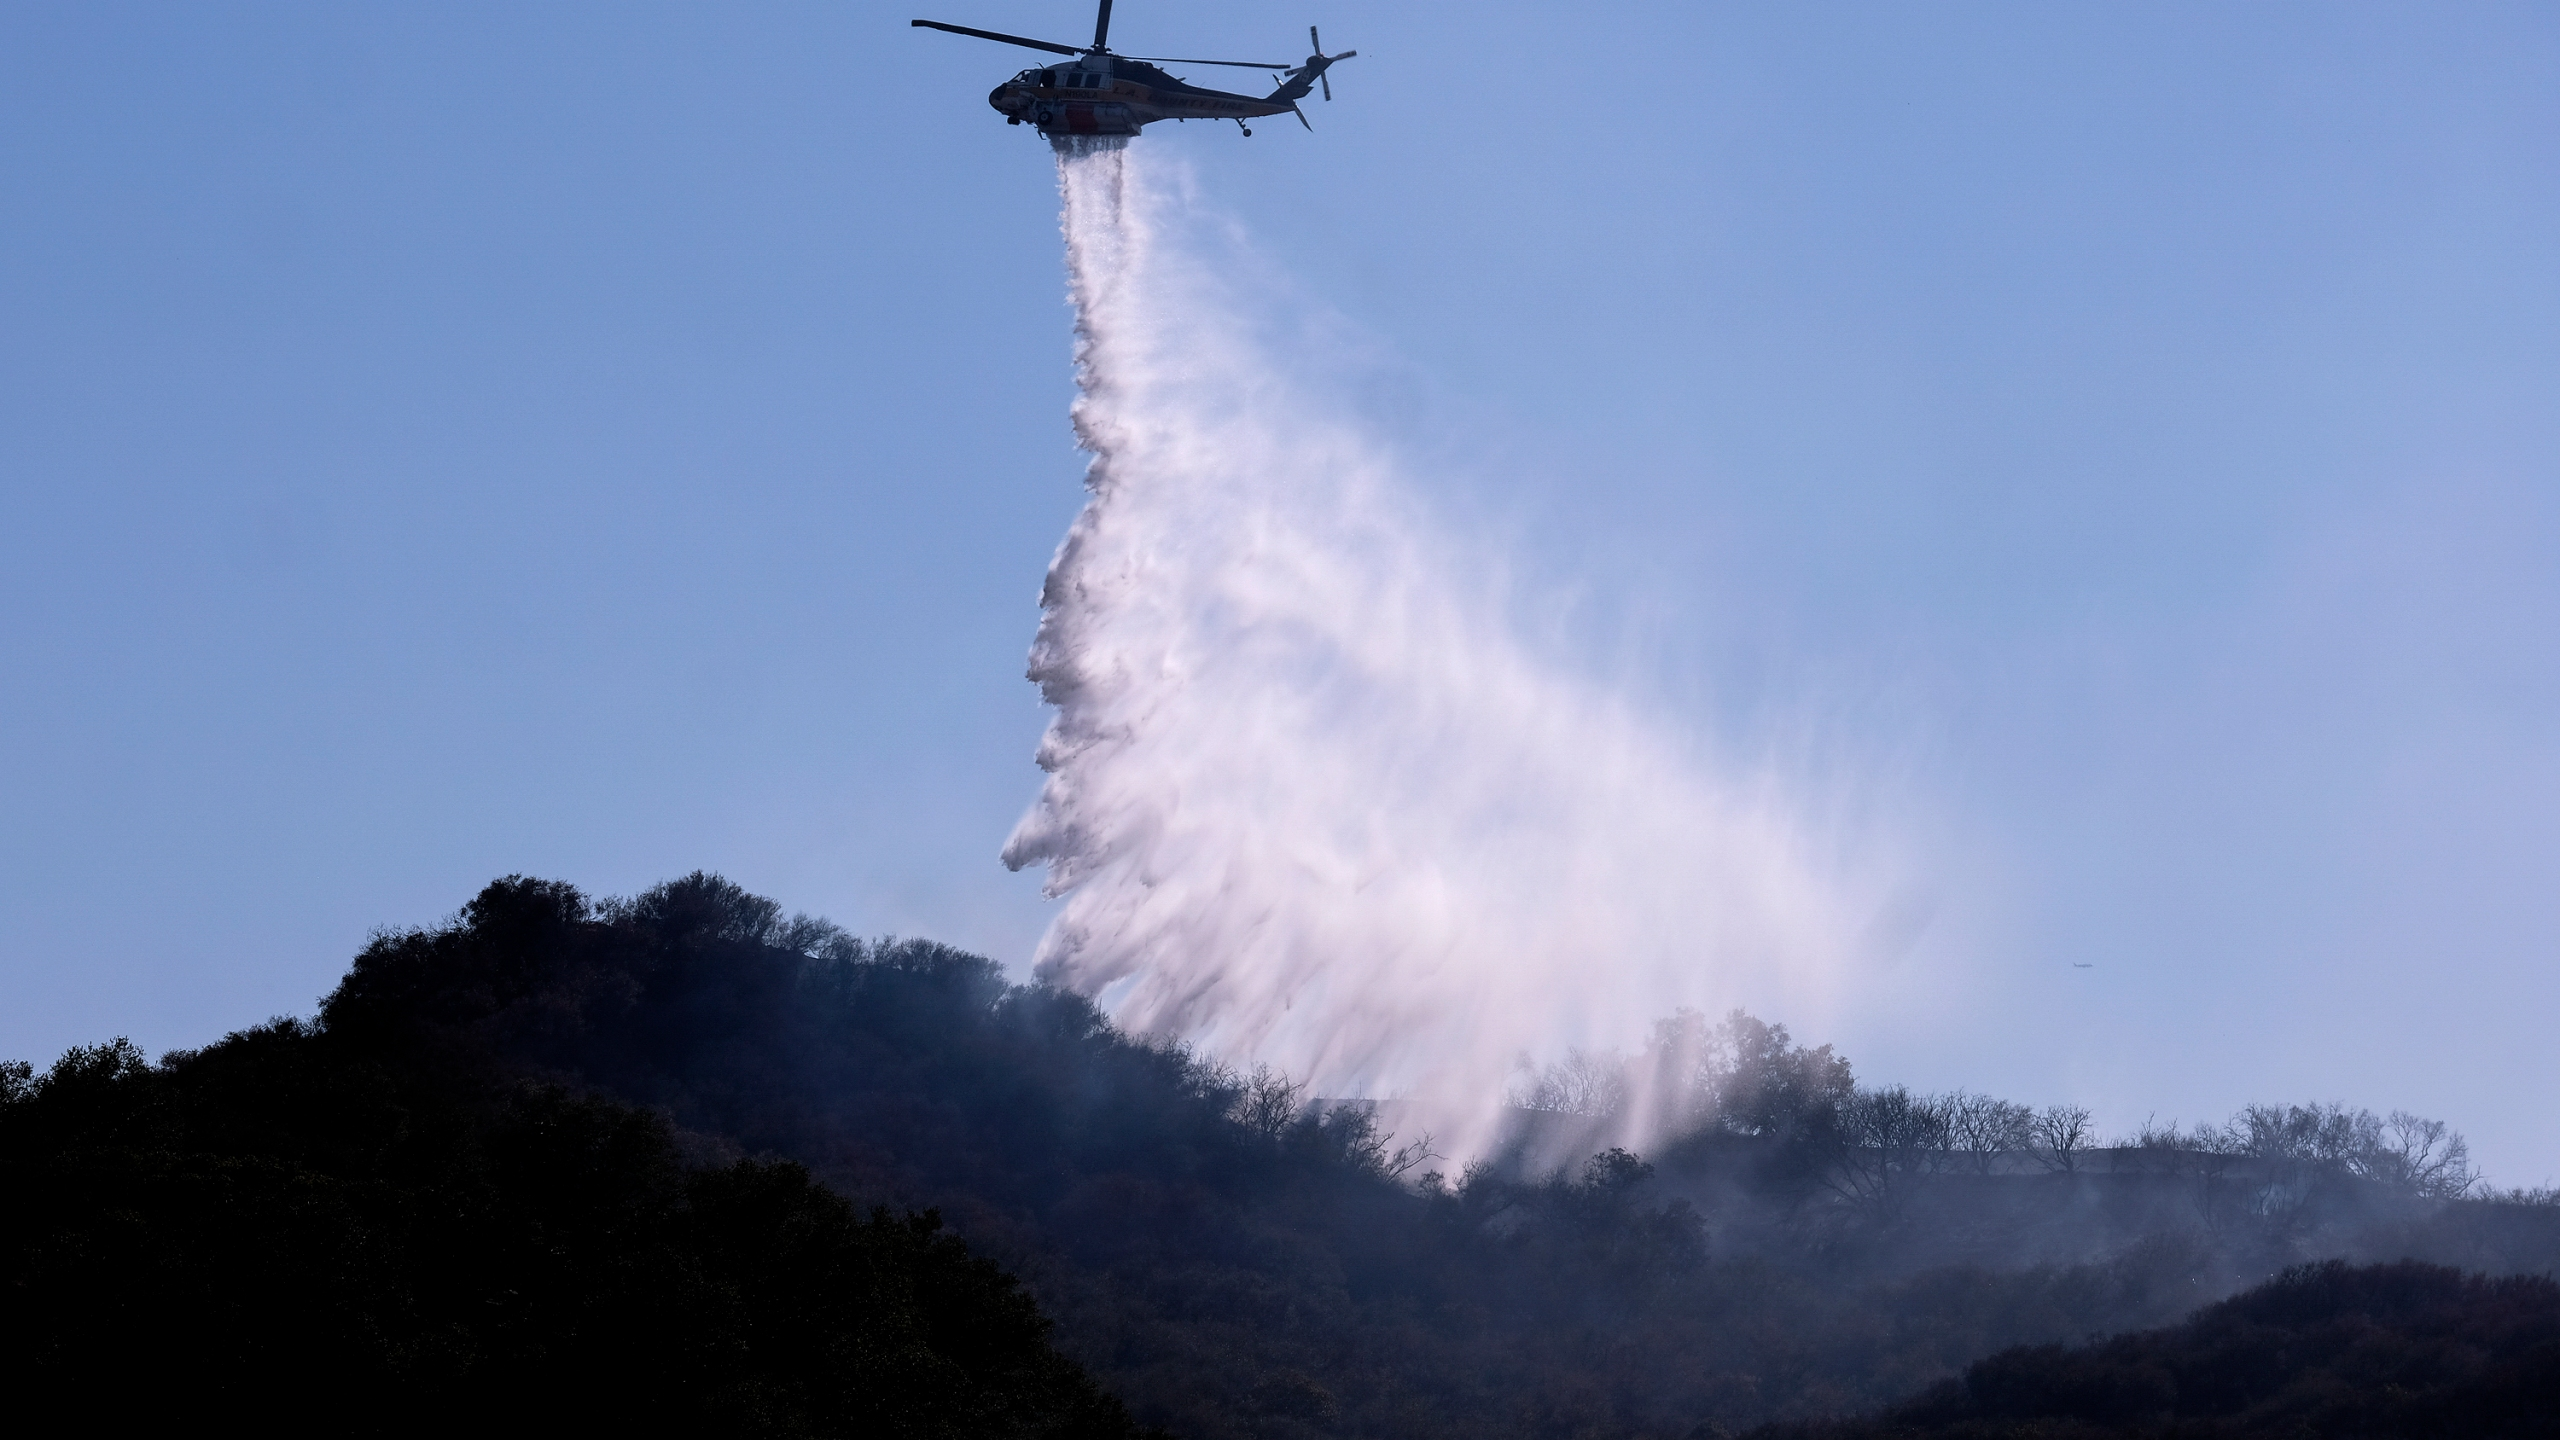 A helicopter makes a water drop to put out hotspots in a wildfire in Topanga, west of Los Angeles, Monday, July 19, 2021. (AP Photo/Ringo H.W. Chiu)